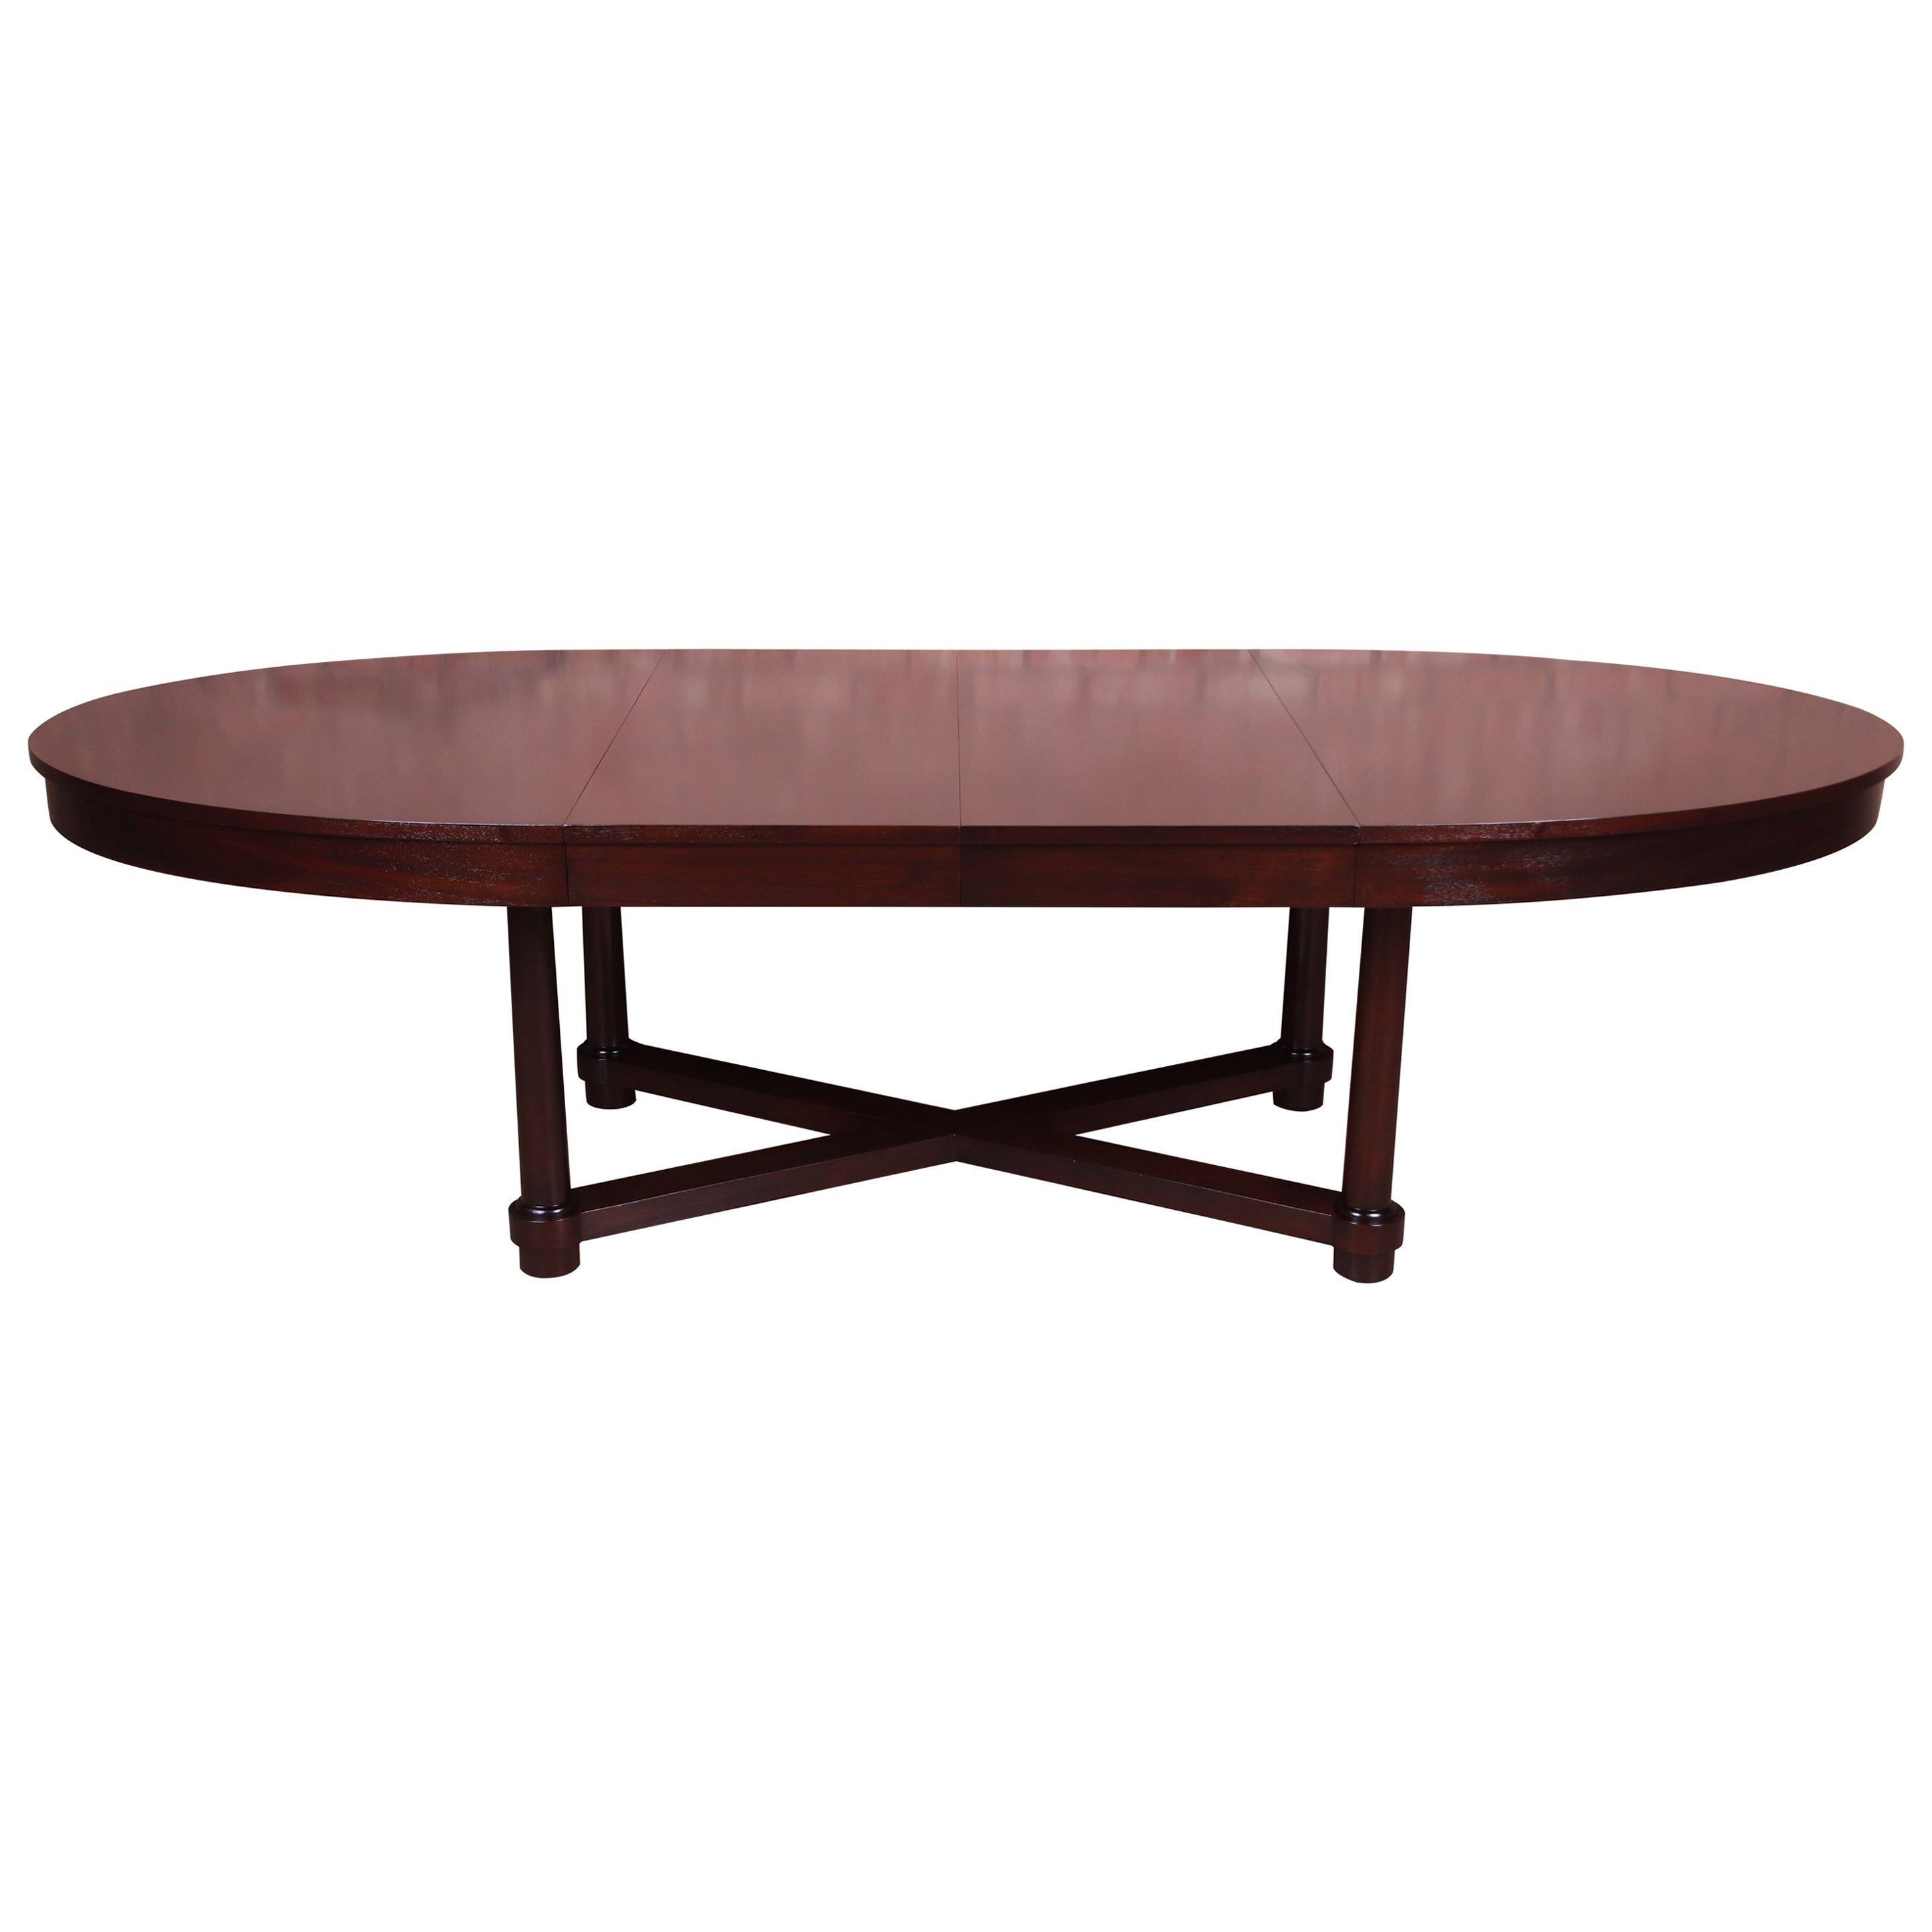 Barbara Barry for Baker Furniture Neoclassical Mahogany Dining Table, Refinished